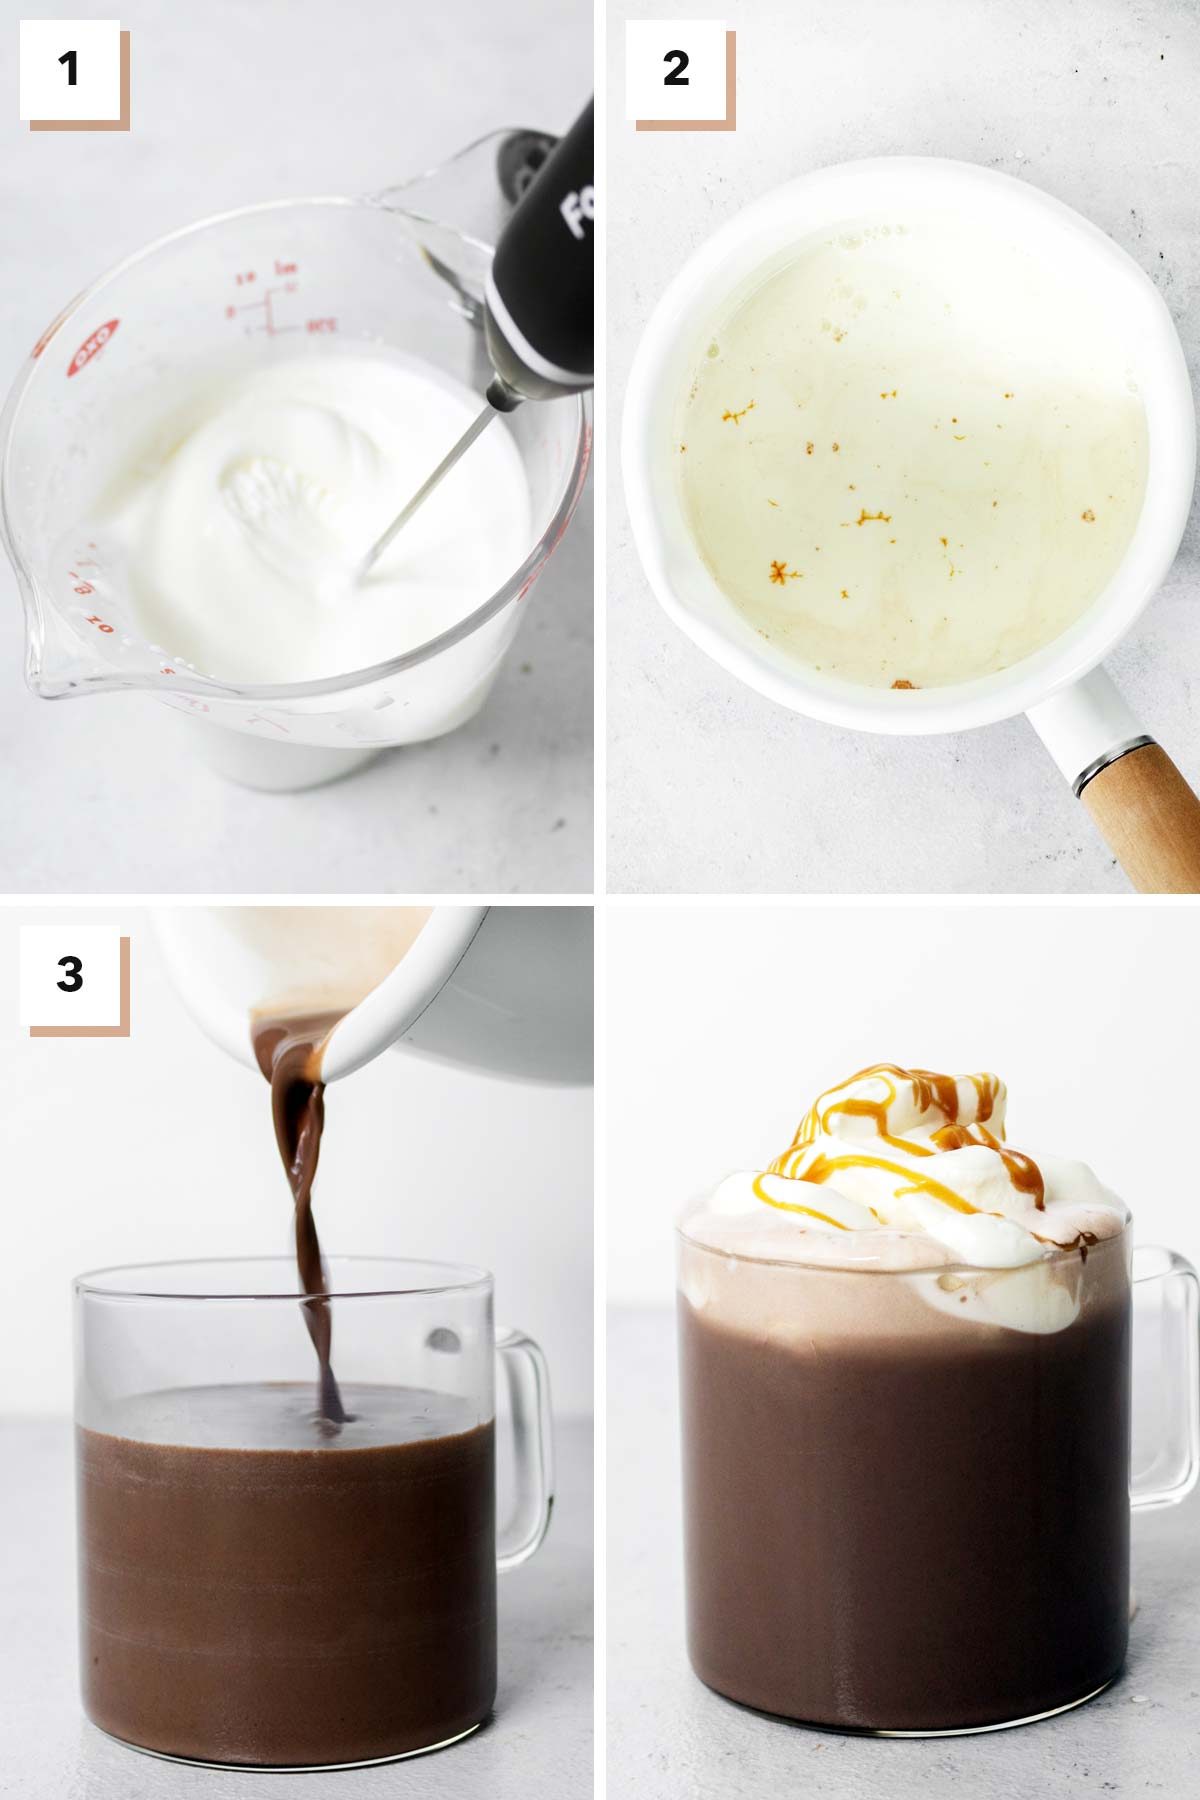 Four photo collage showing steps to make salted caramel hot chocolate.